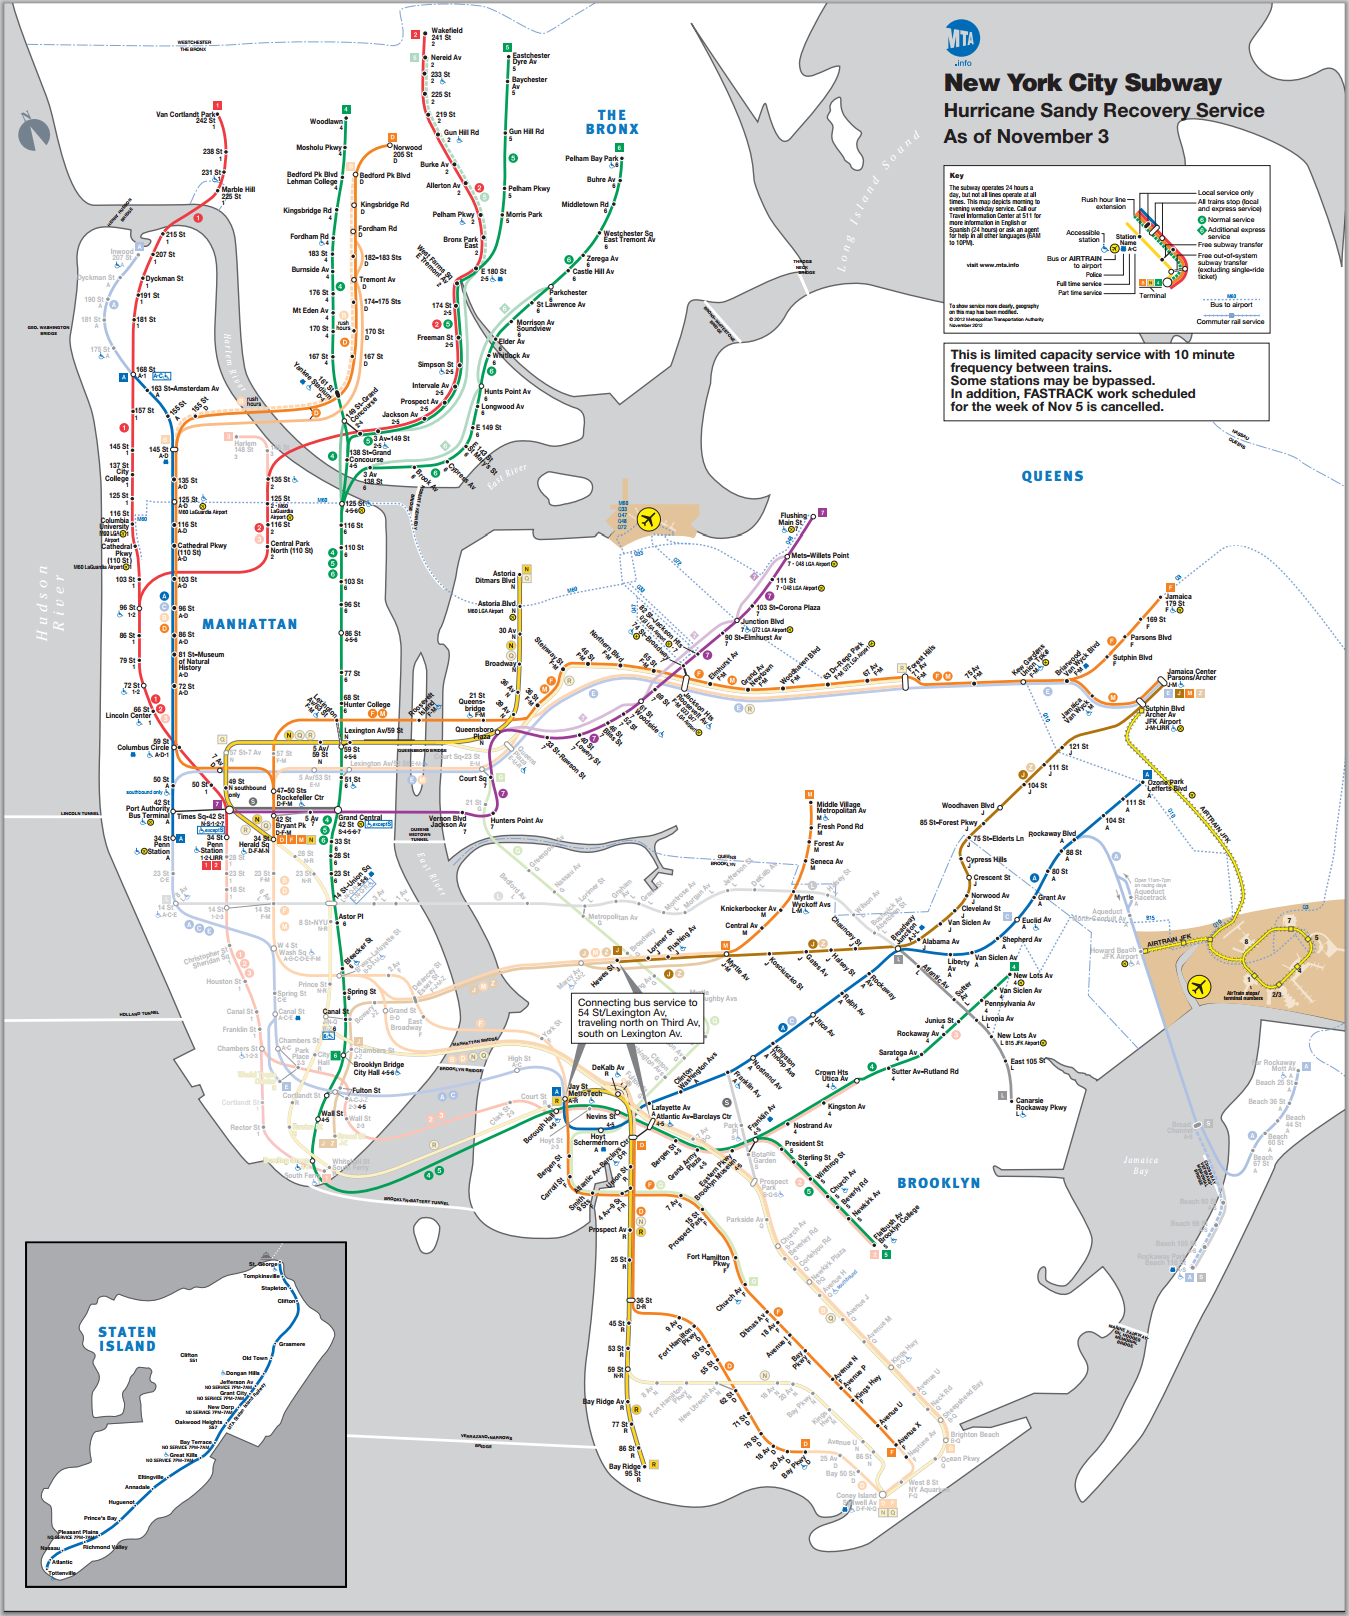 Subway Map Nyc 2014.Updated Nyc Subway Map As Of November 3 2012 Doslives Com